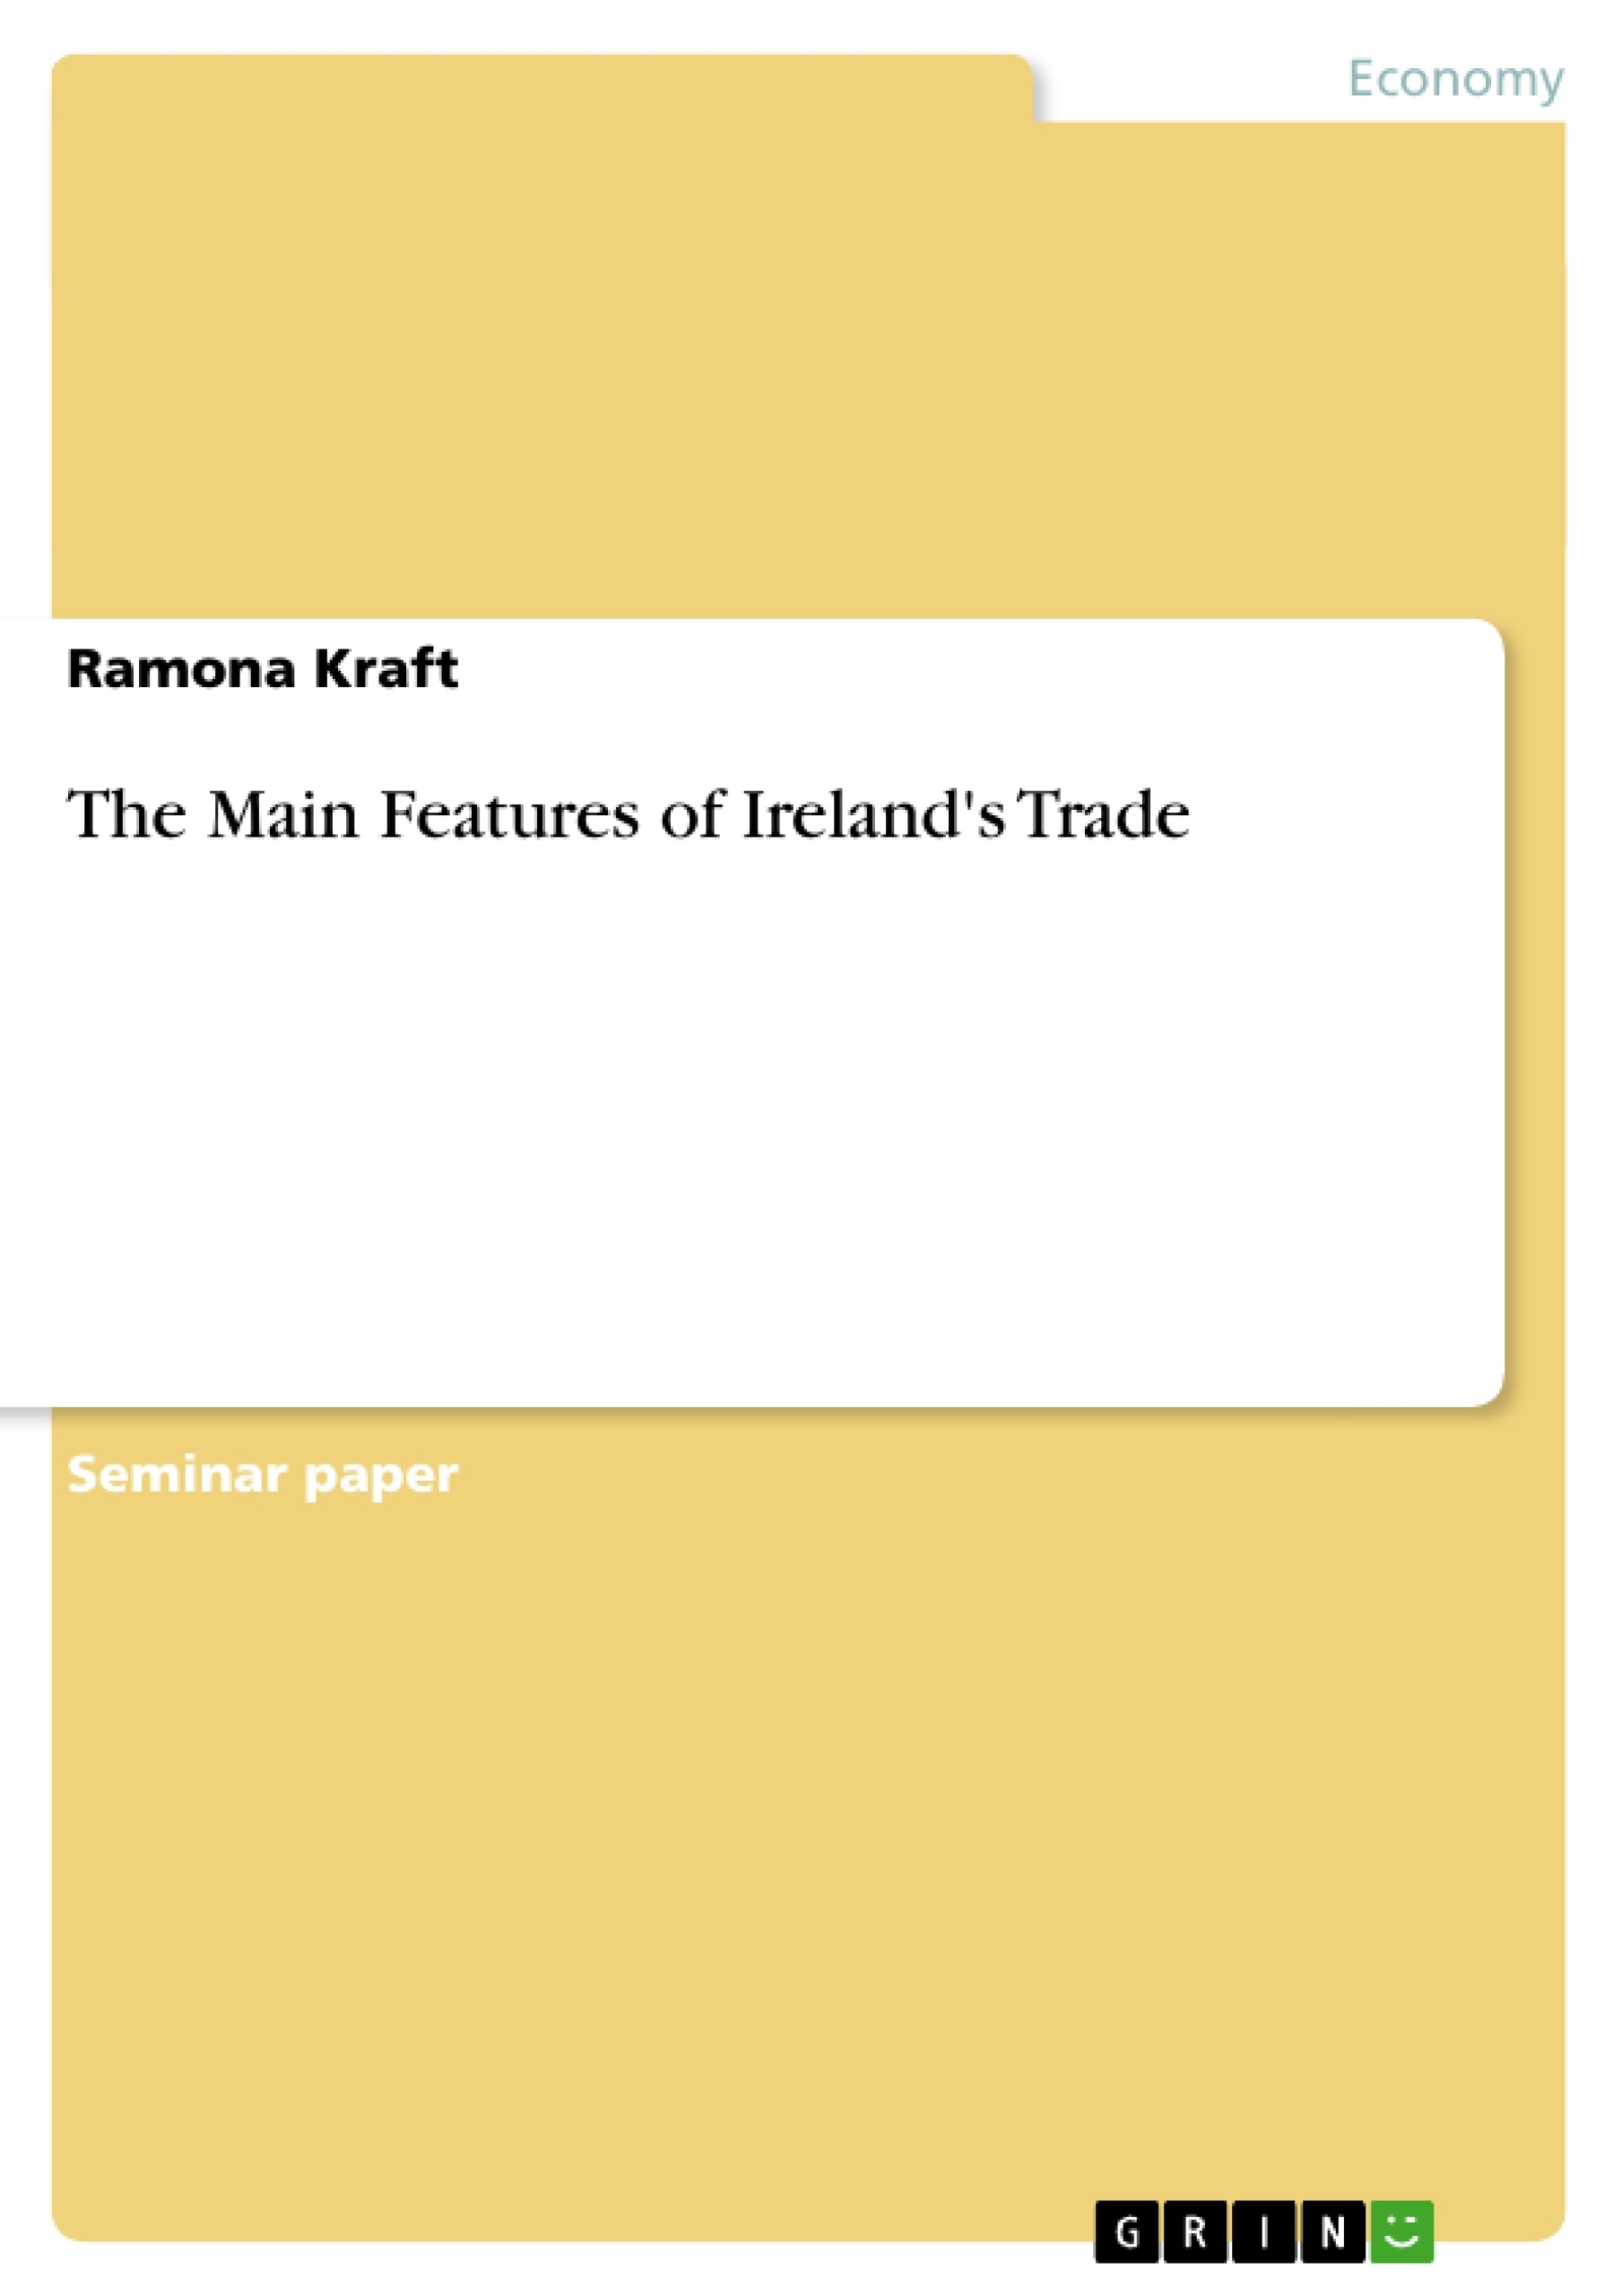 Title: The Main Features of Ireland's Trade